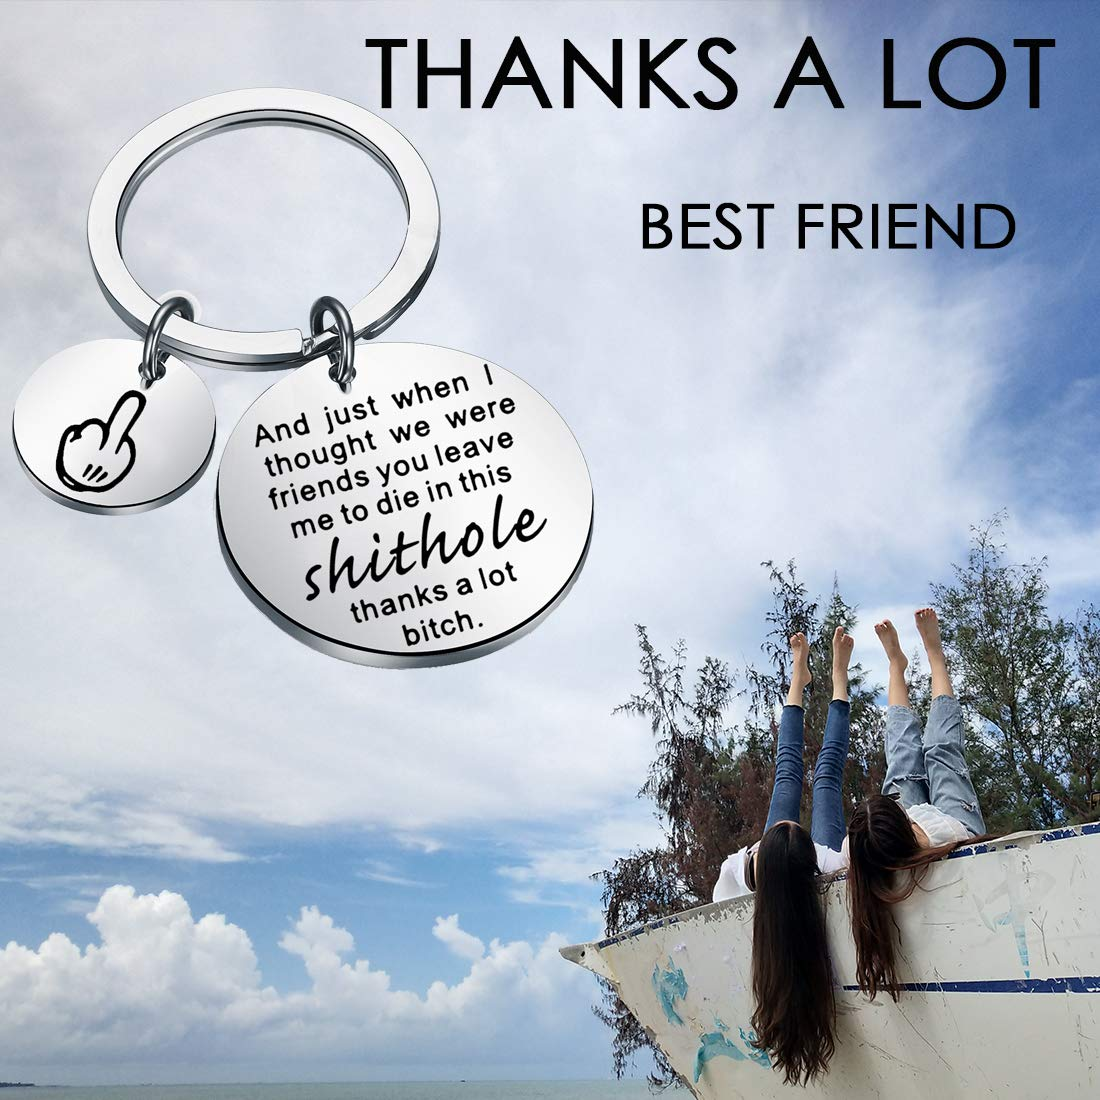 TGBJE Coworker Leaving Gift Funny Going Away Gift and Just When I Thought We were Friends You Leave Me to Die in This Shithole Thanks A Lot Bitch Keychain Goodbye Gift for Her